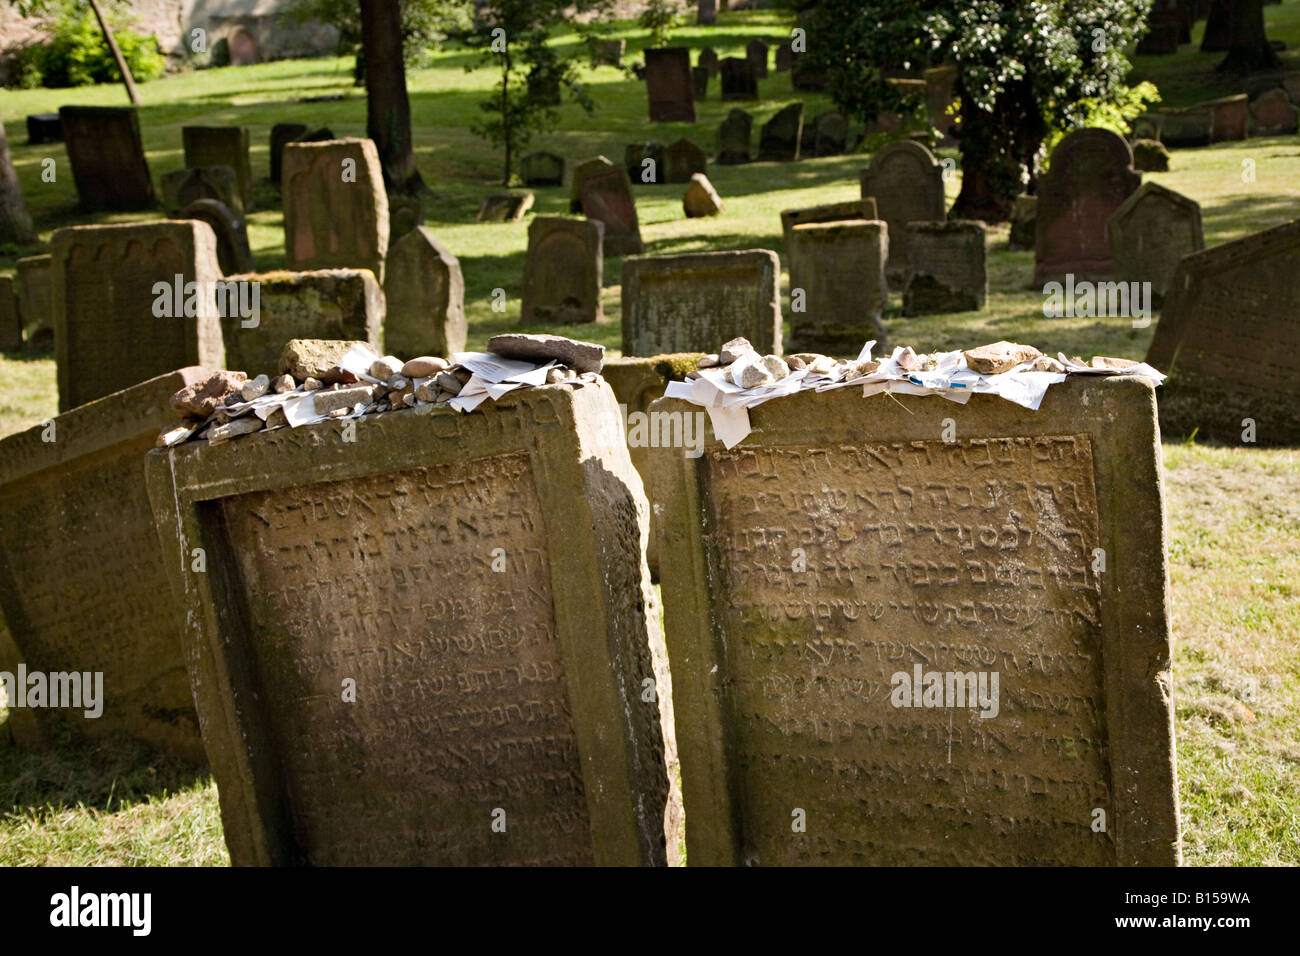 Stones and messages on top of rabbi's gravestone with hebrew writing in Jewish cemetery Worms Germany - Stock Image